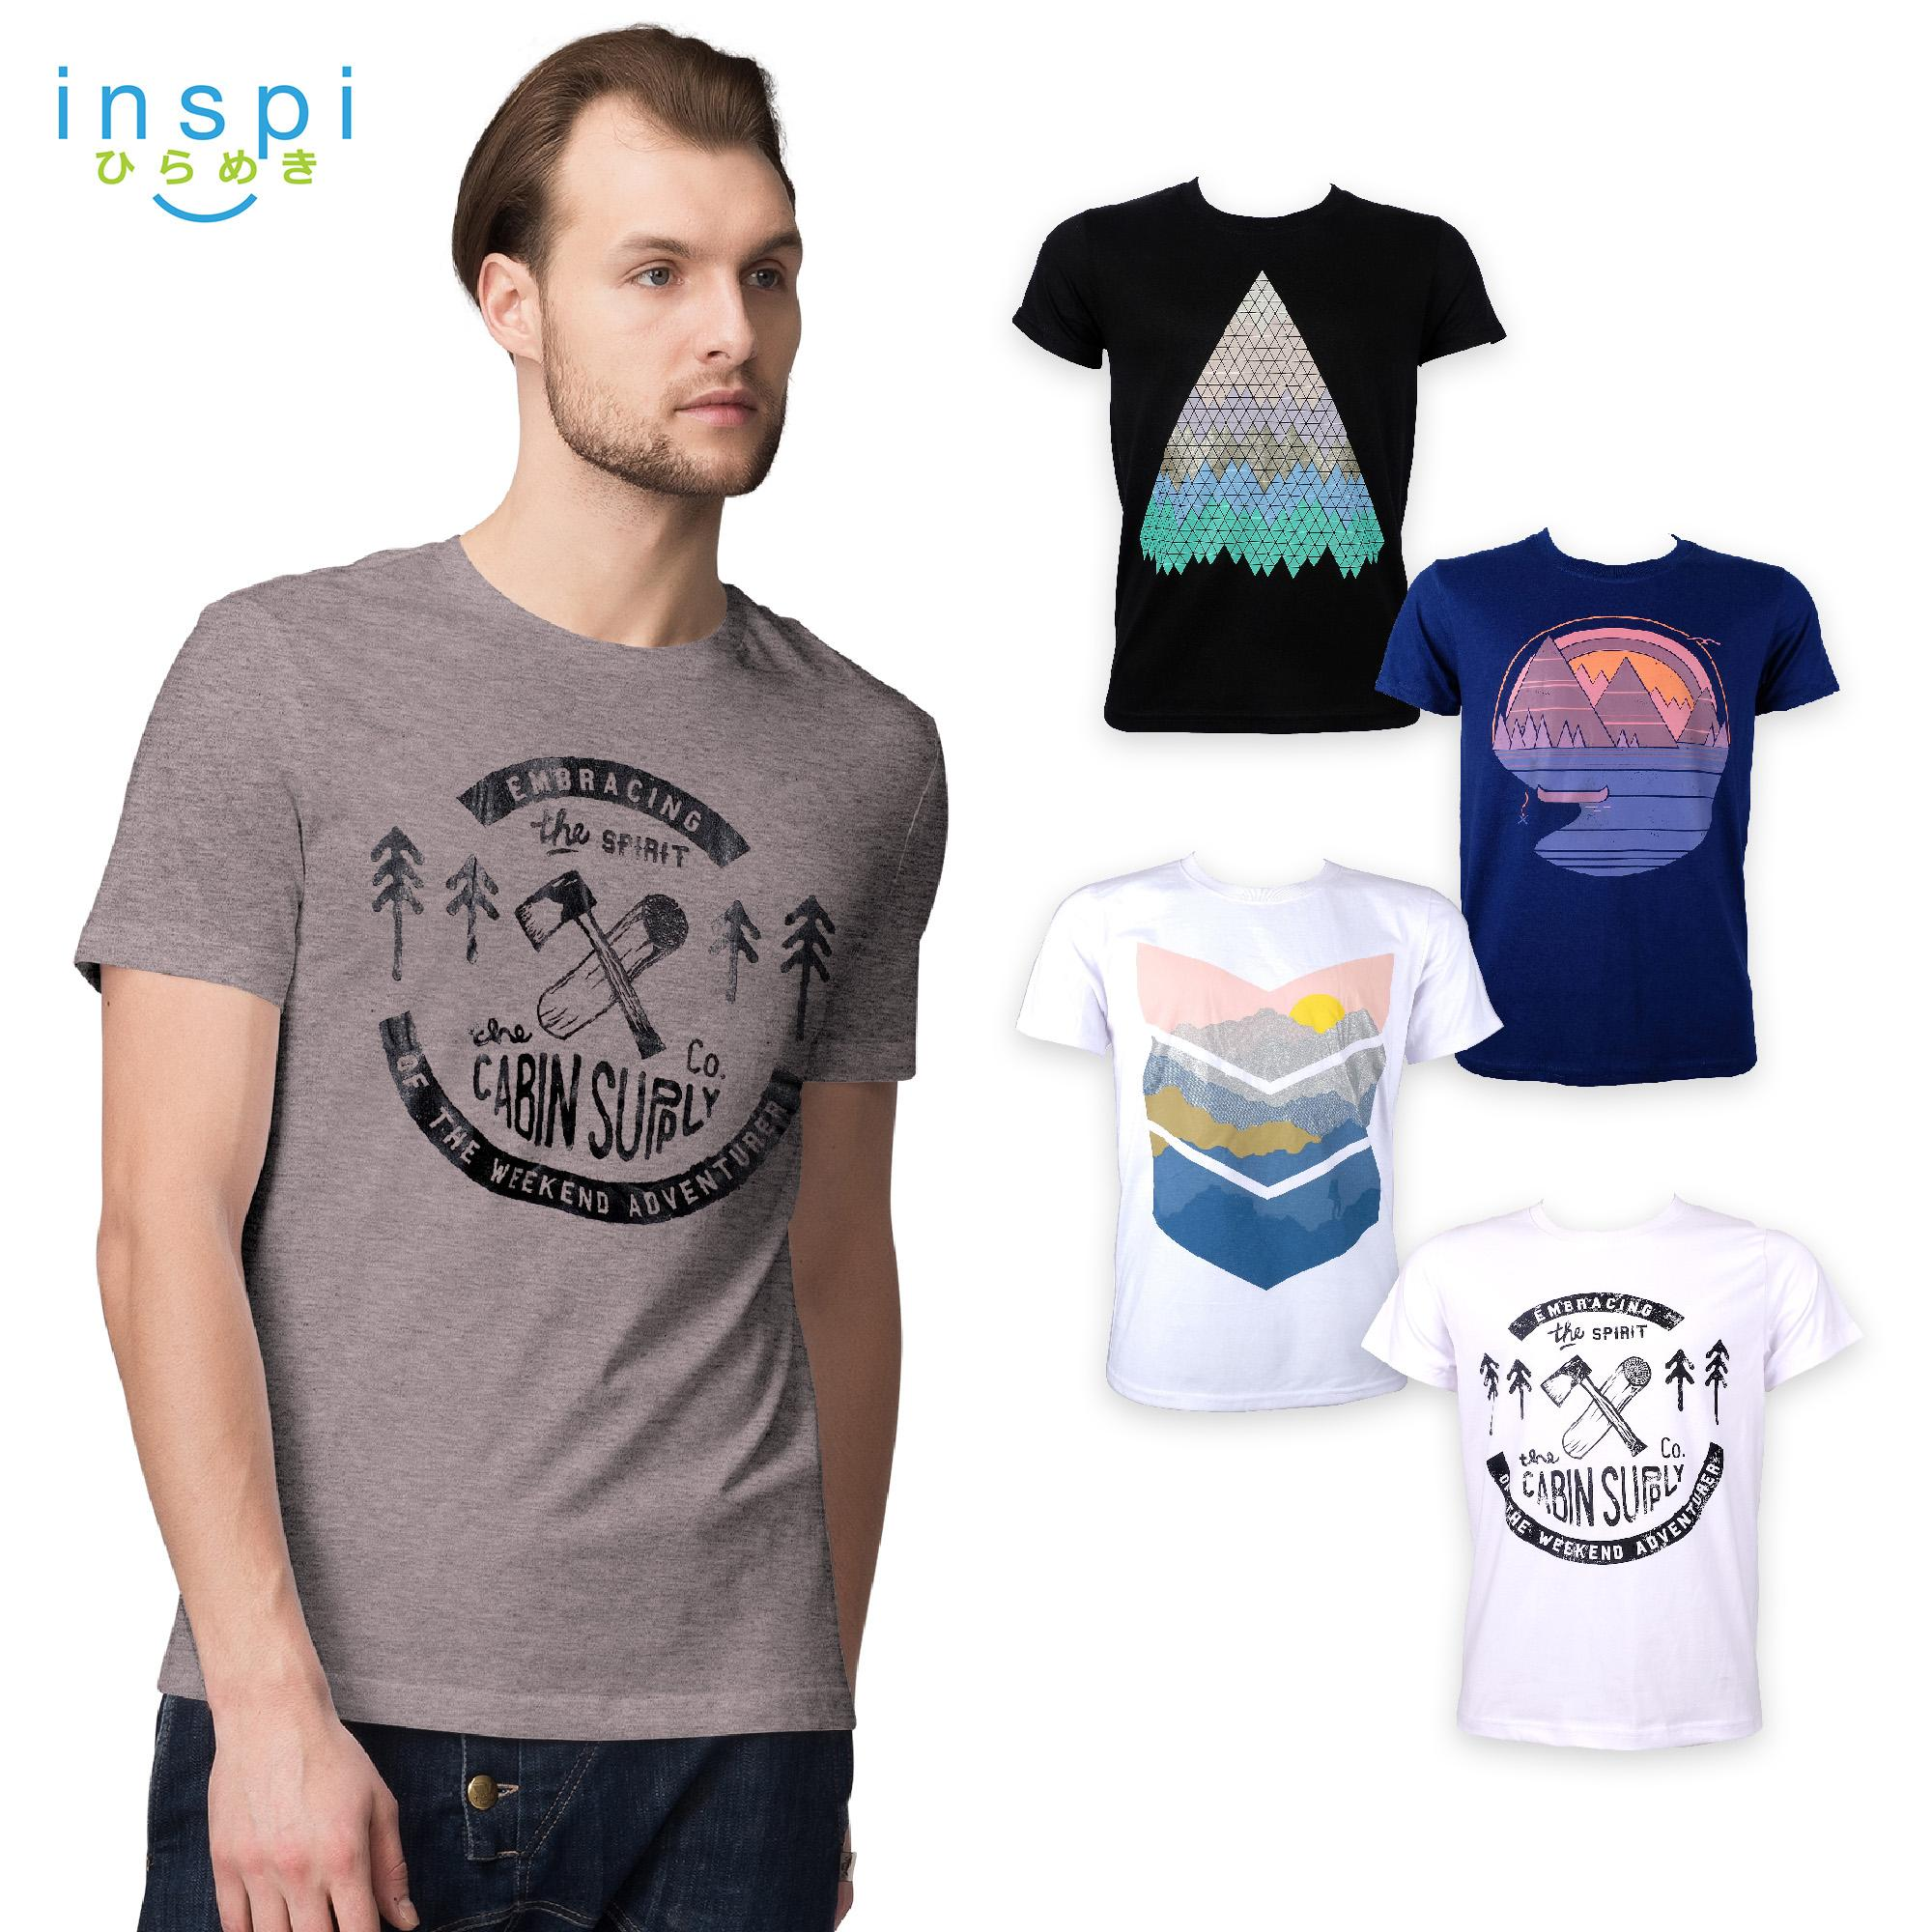 77ed7277b4e INSPI Tees Outdoors Collection tshirt printed graphic tee Mens t shirt  shirts for men tshirts sale